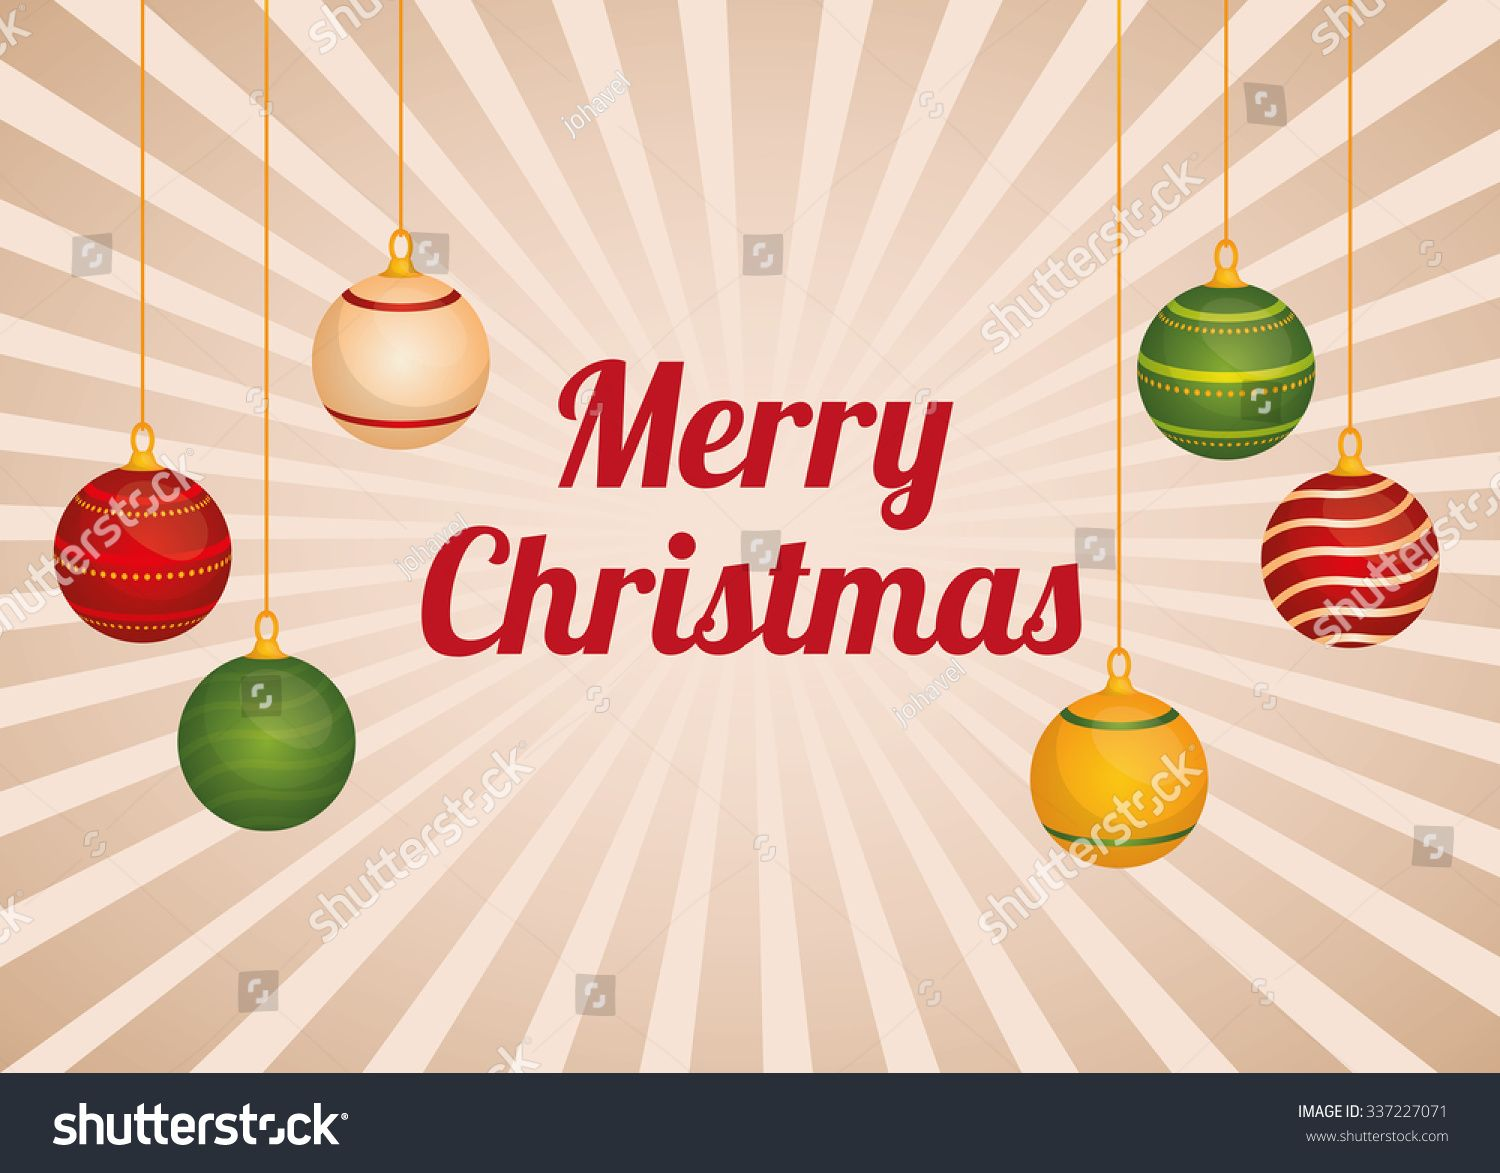 Merry Christmas concept with decoration icons design